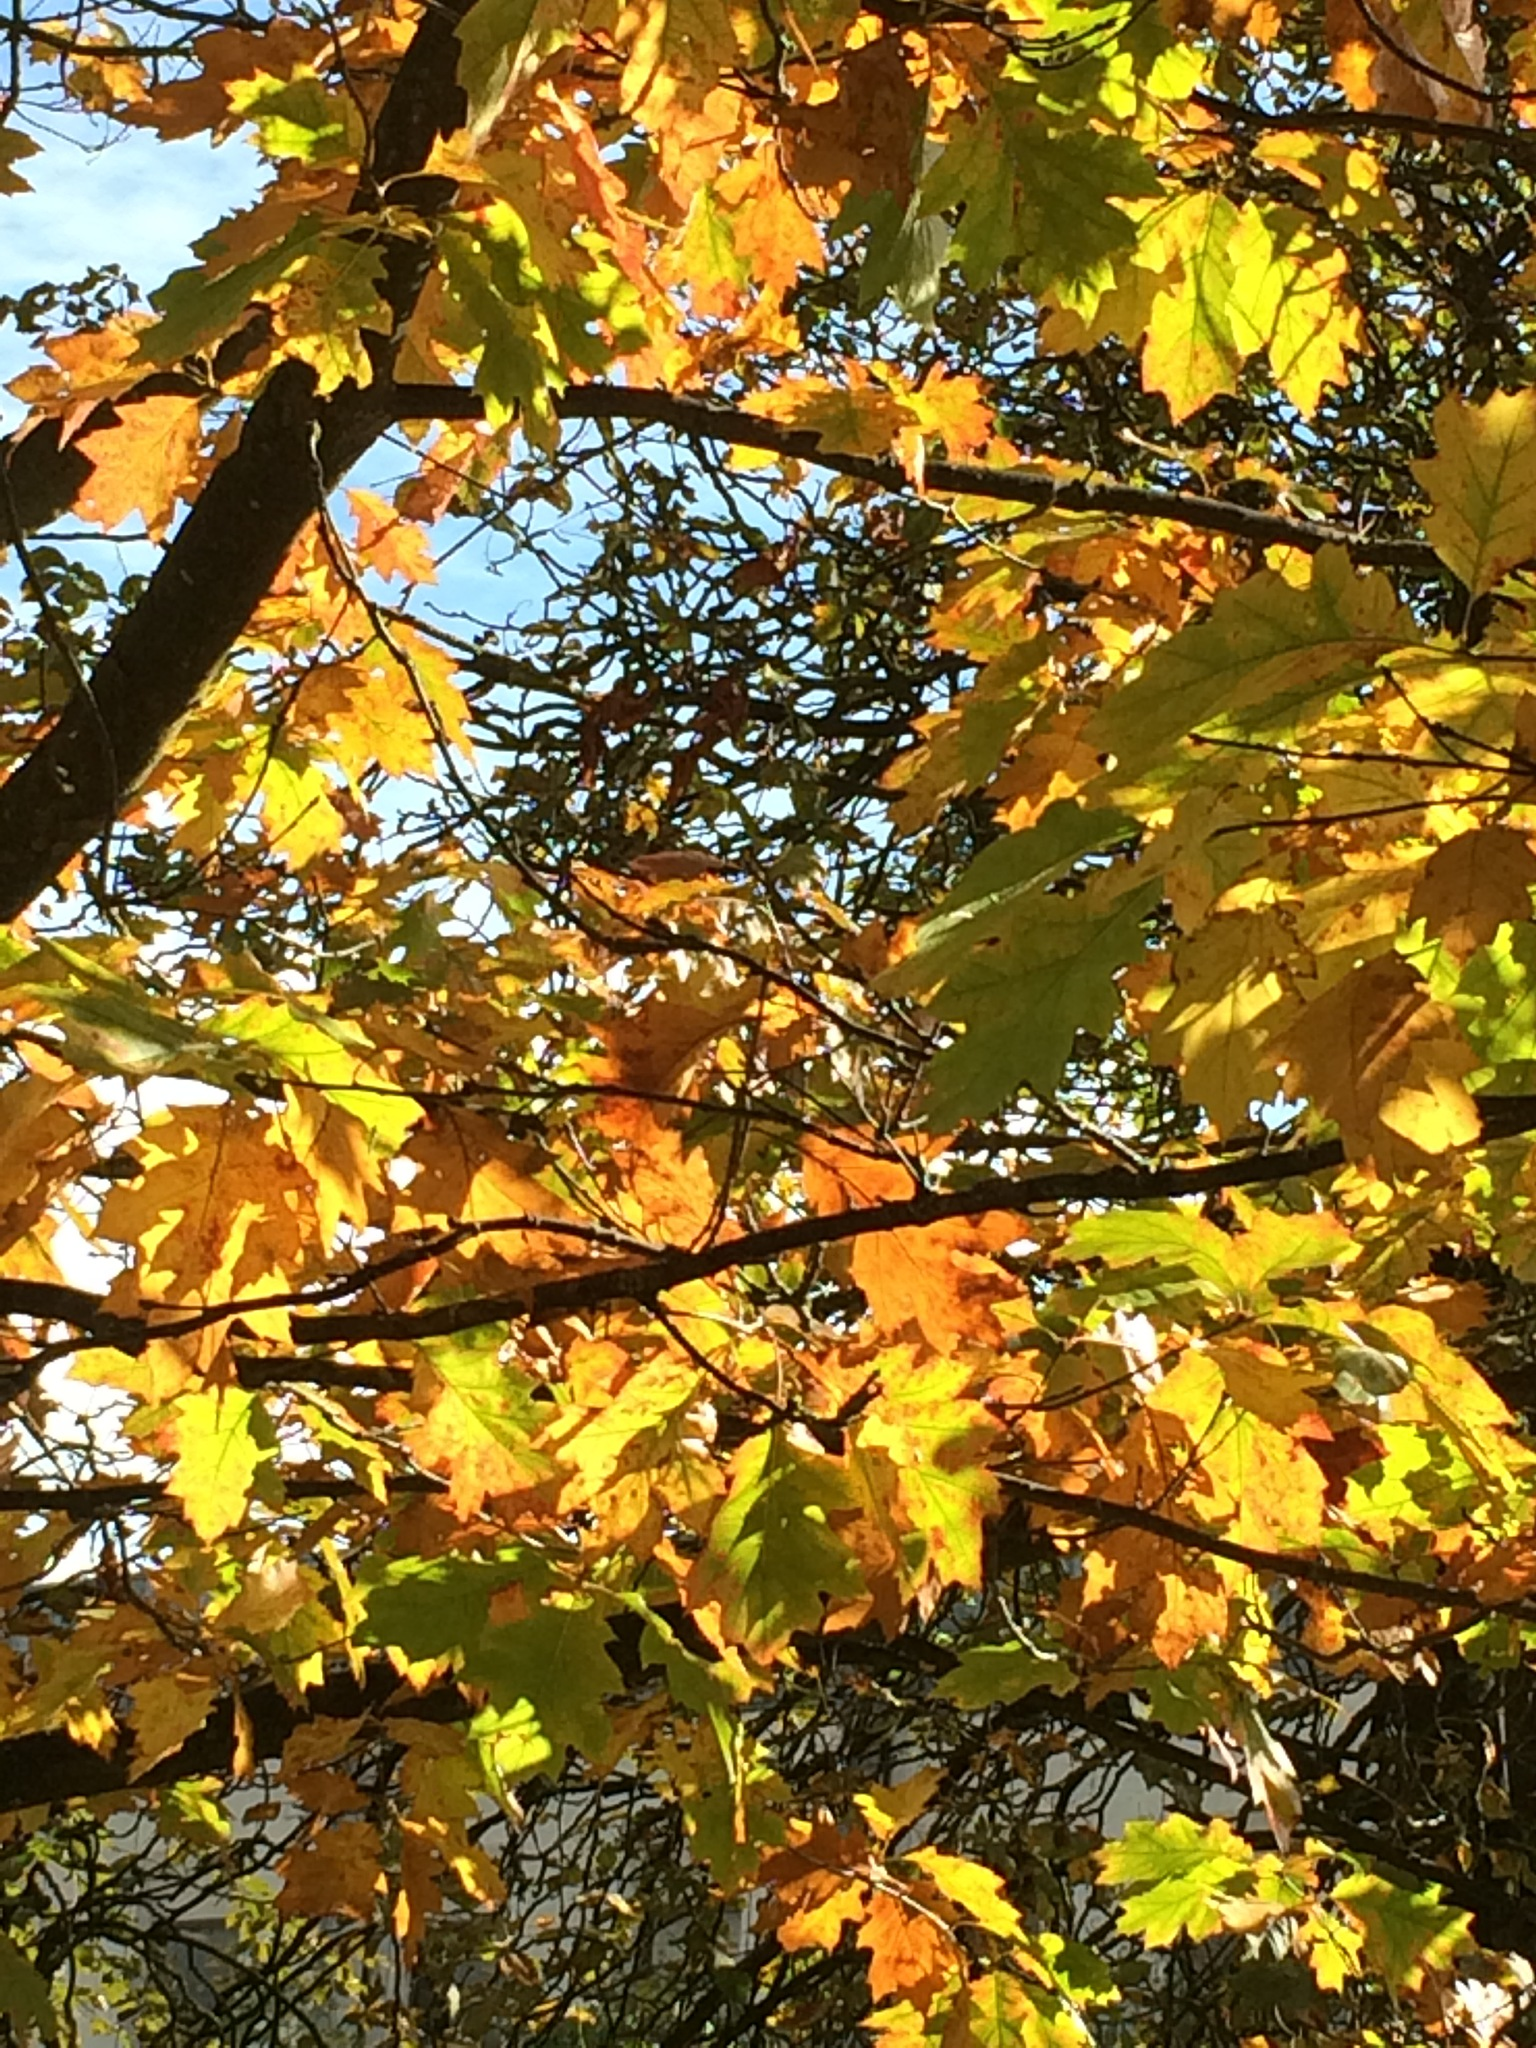 Autumn leaves catching the light by c.davis_1956